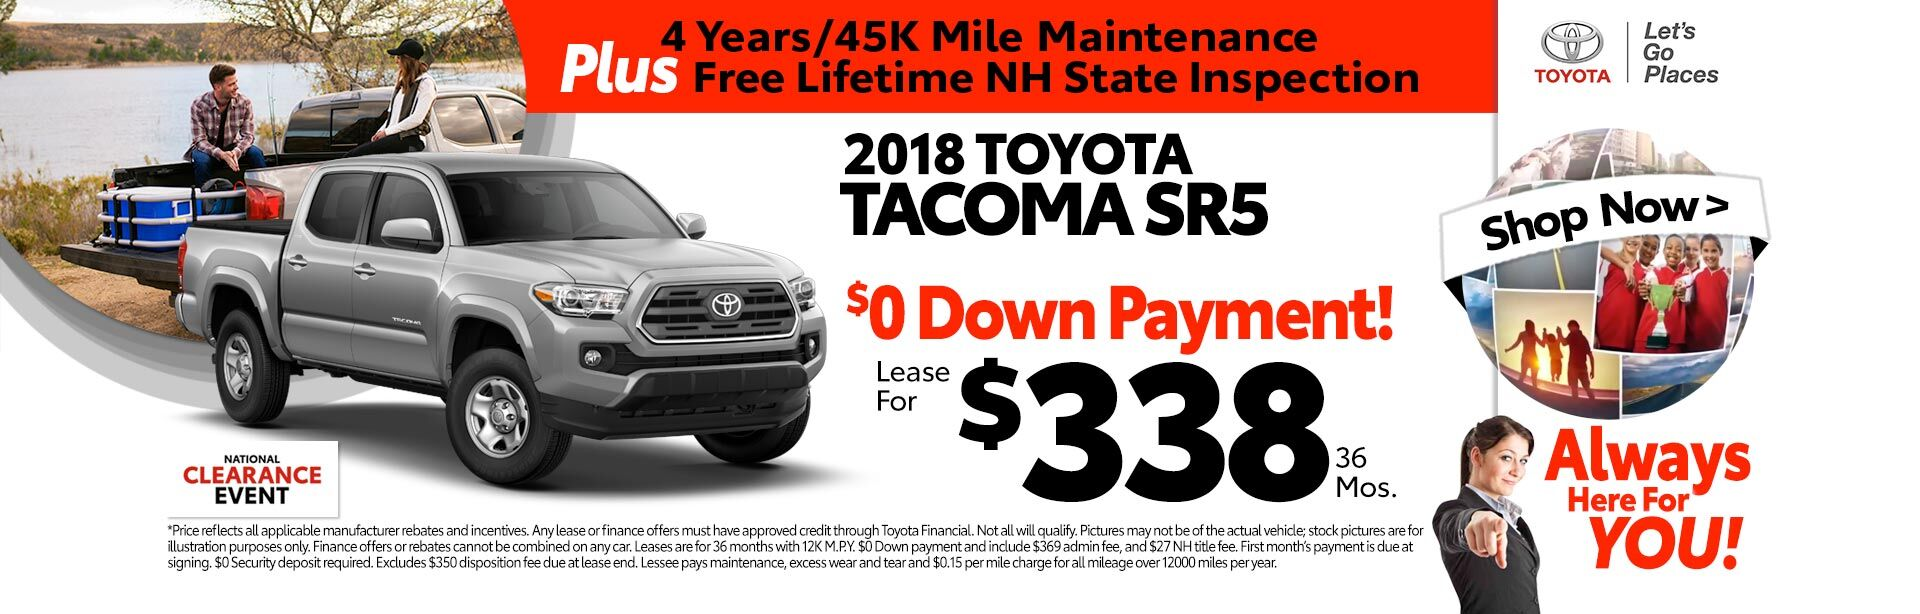 Tacoma Lease Special